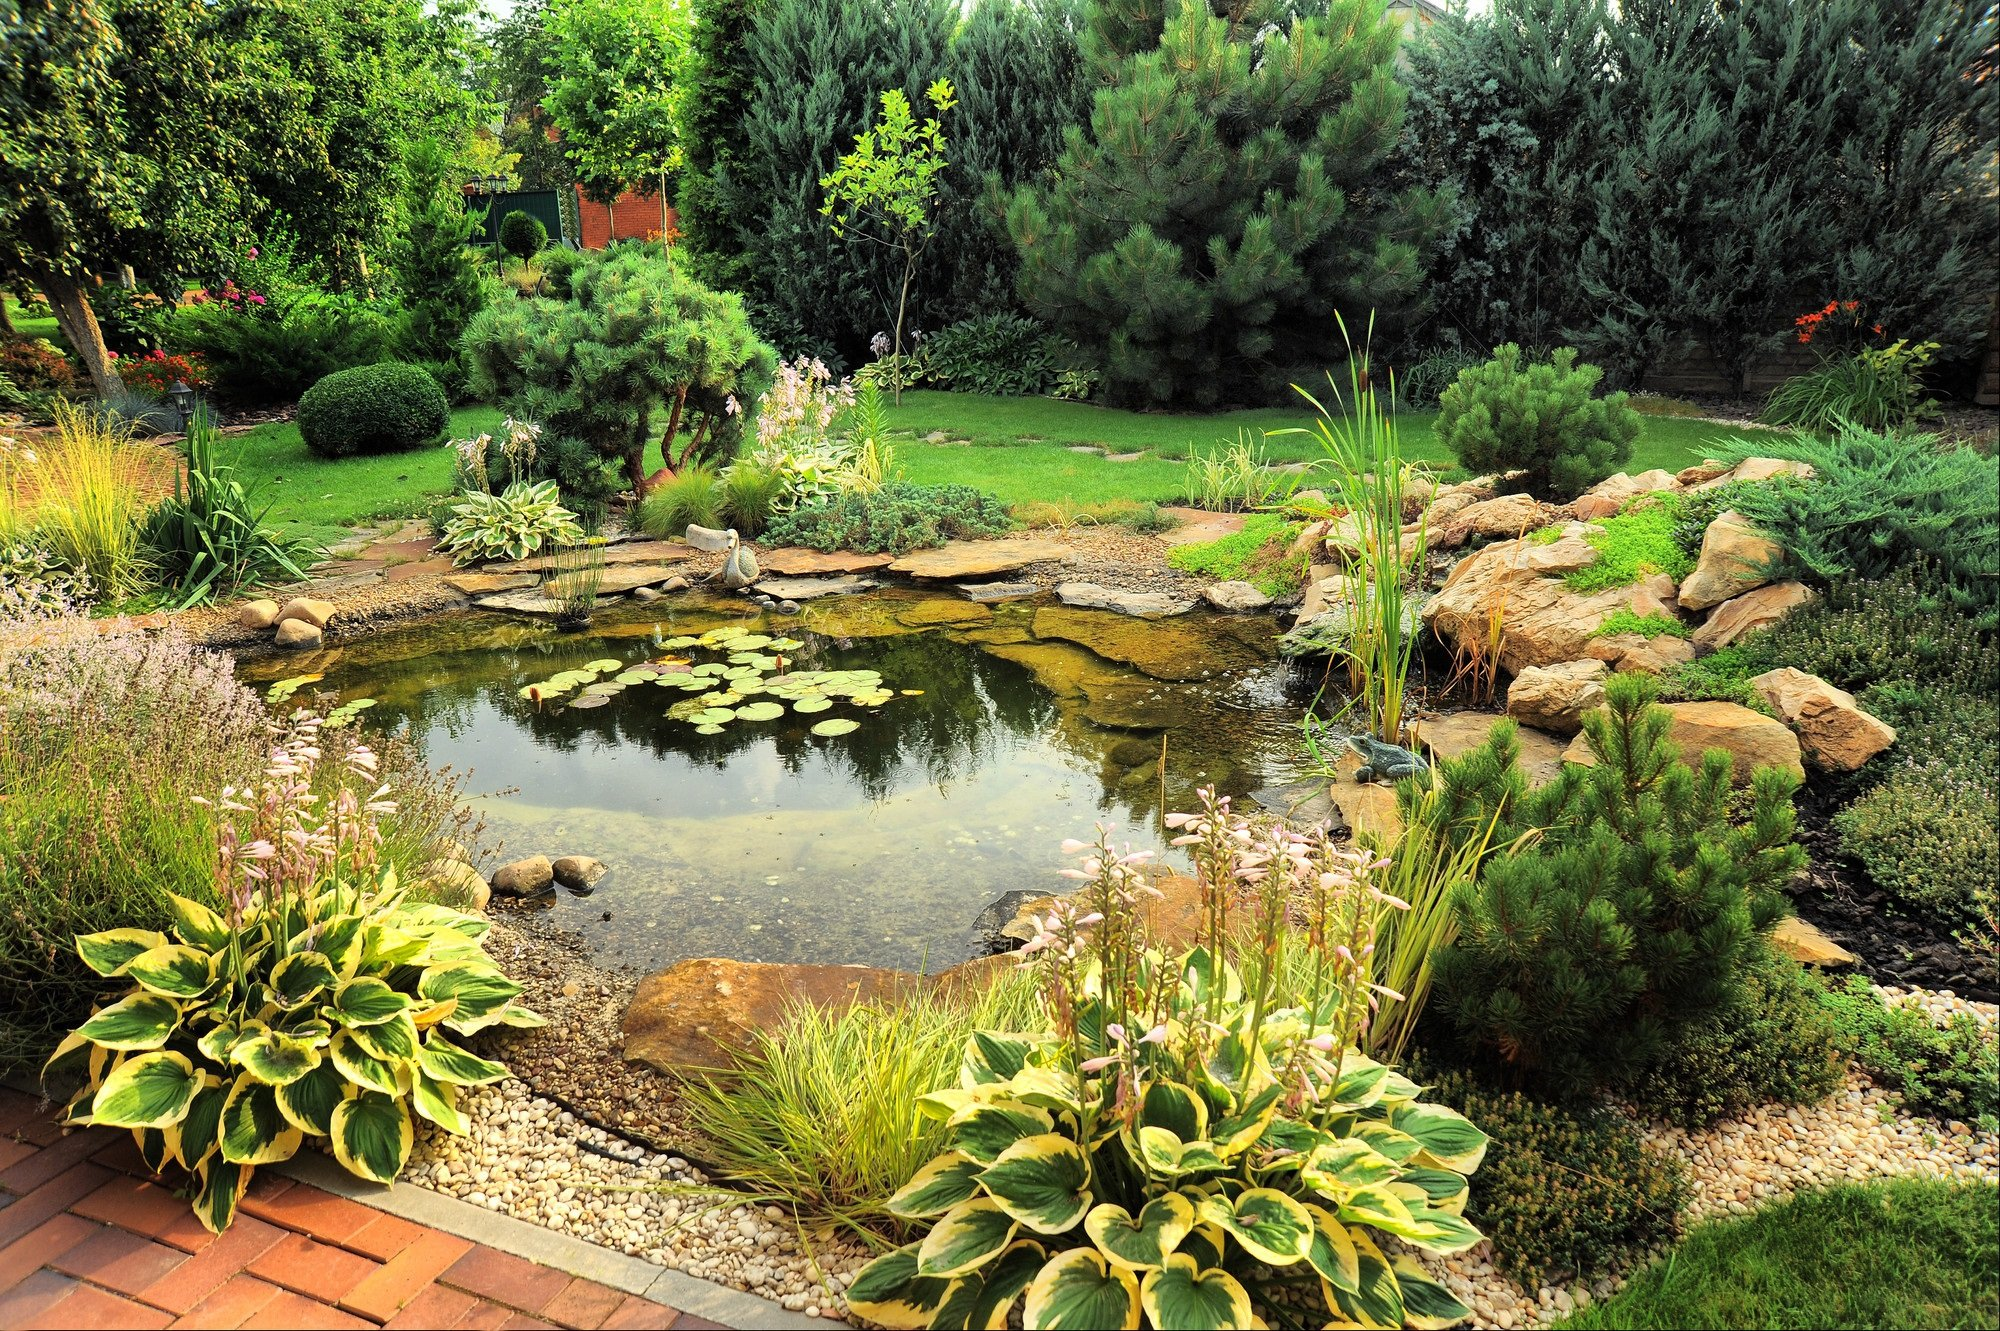 pond with rockery edges and water lilies